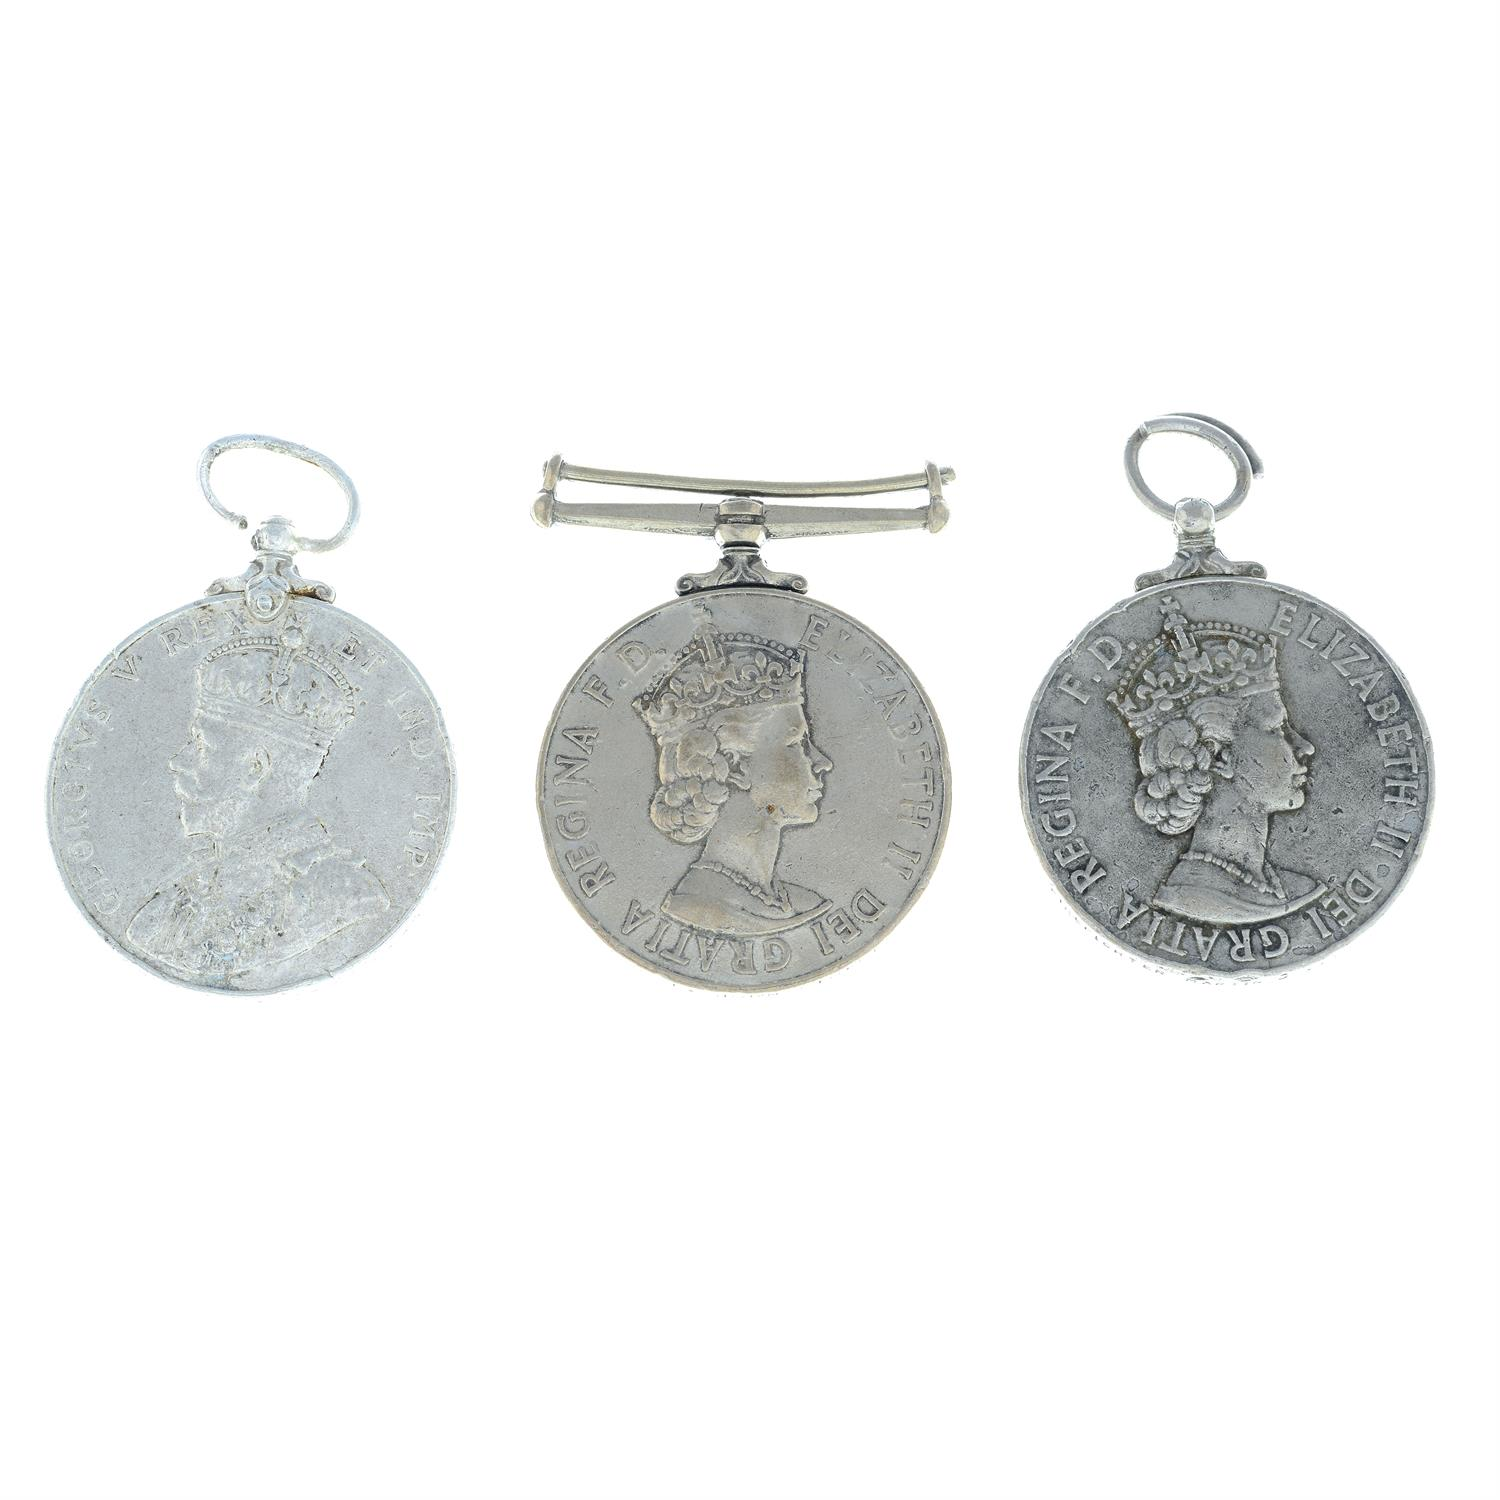 An assortment of civil medals, to include Police Long Service and Good Conduct medals, etc. (6).